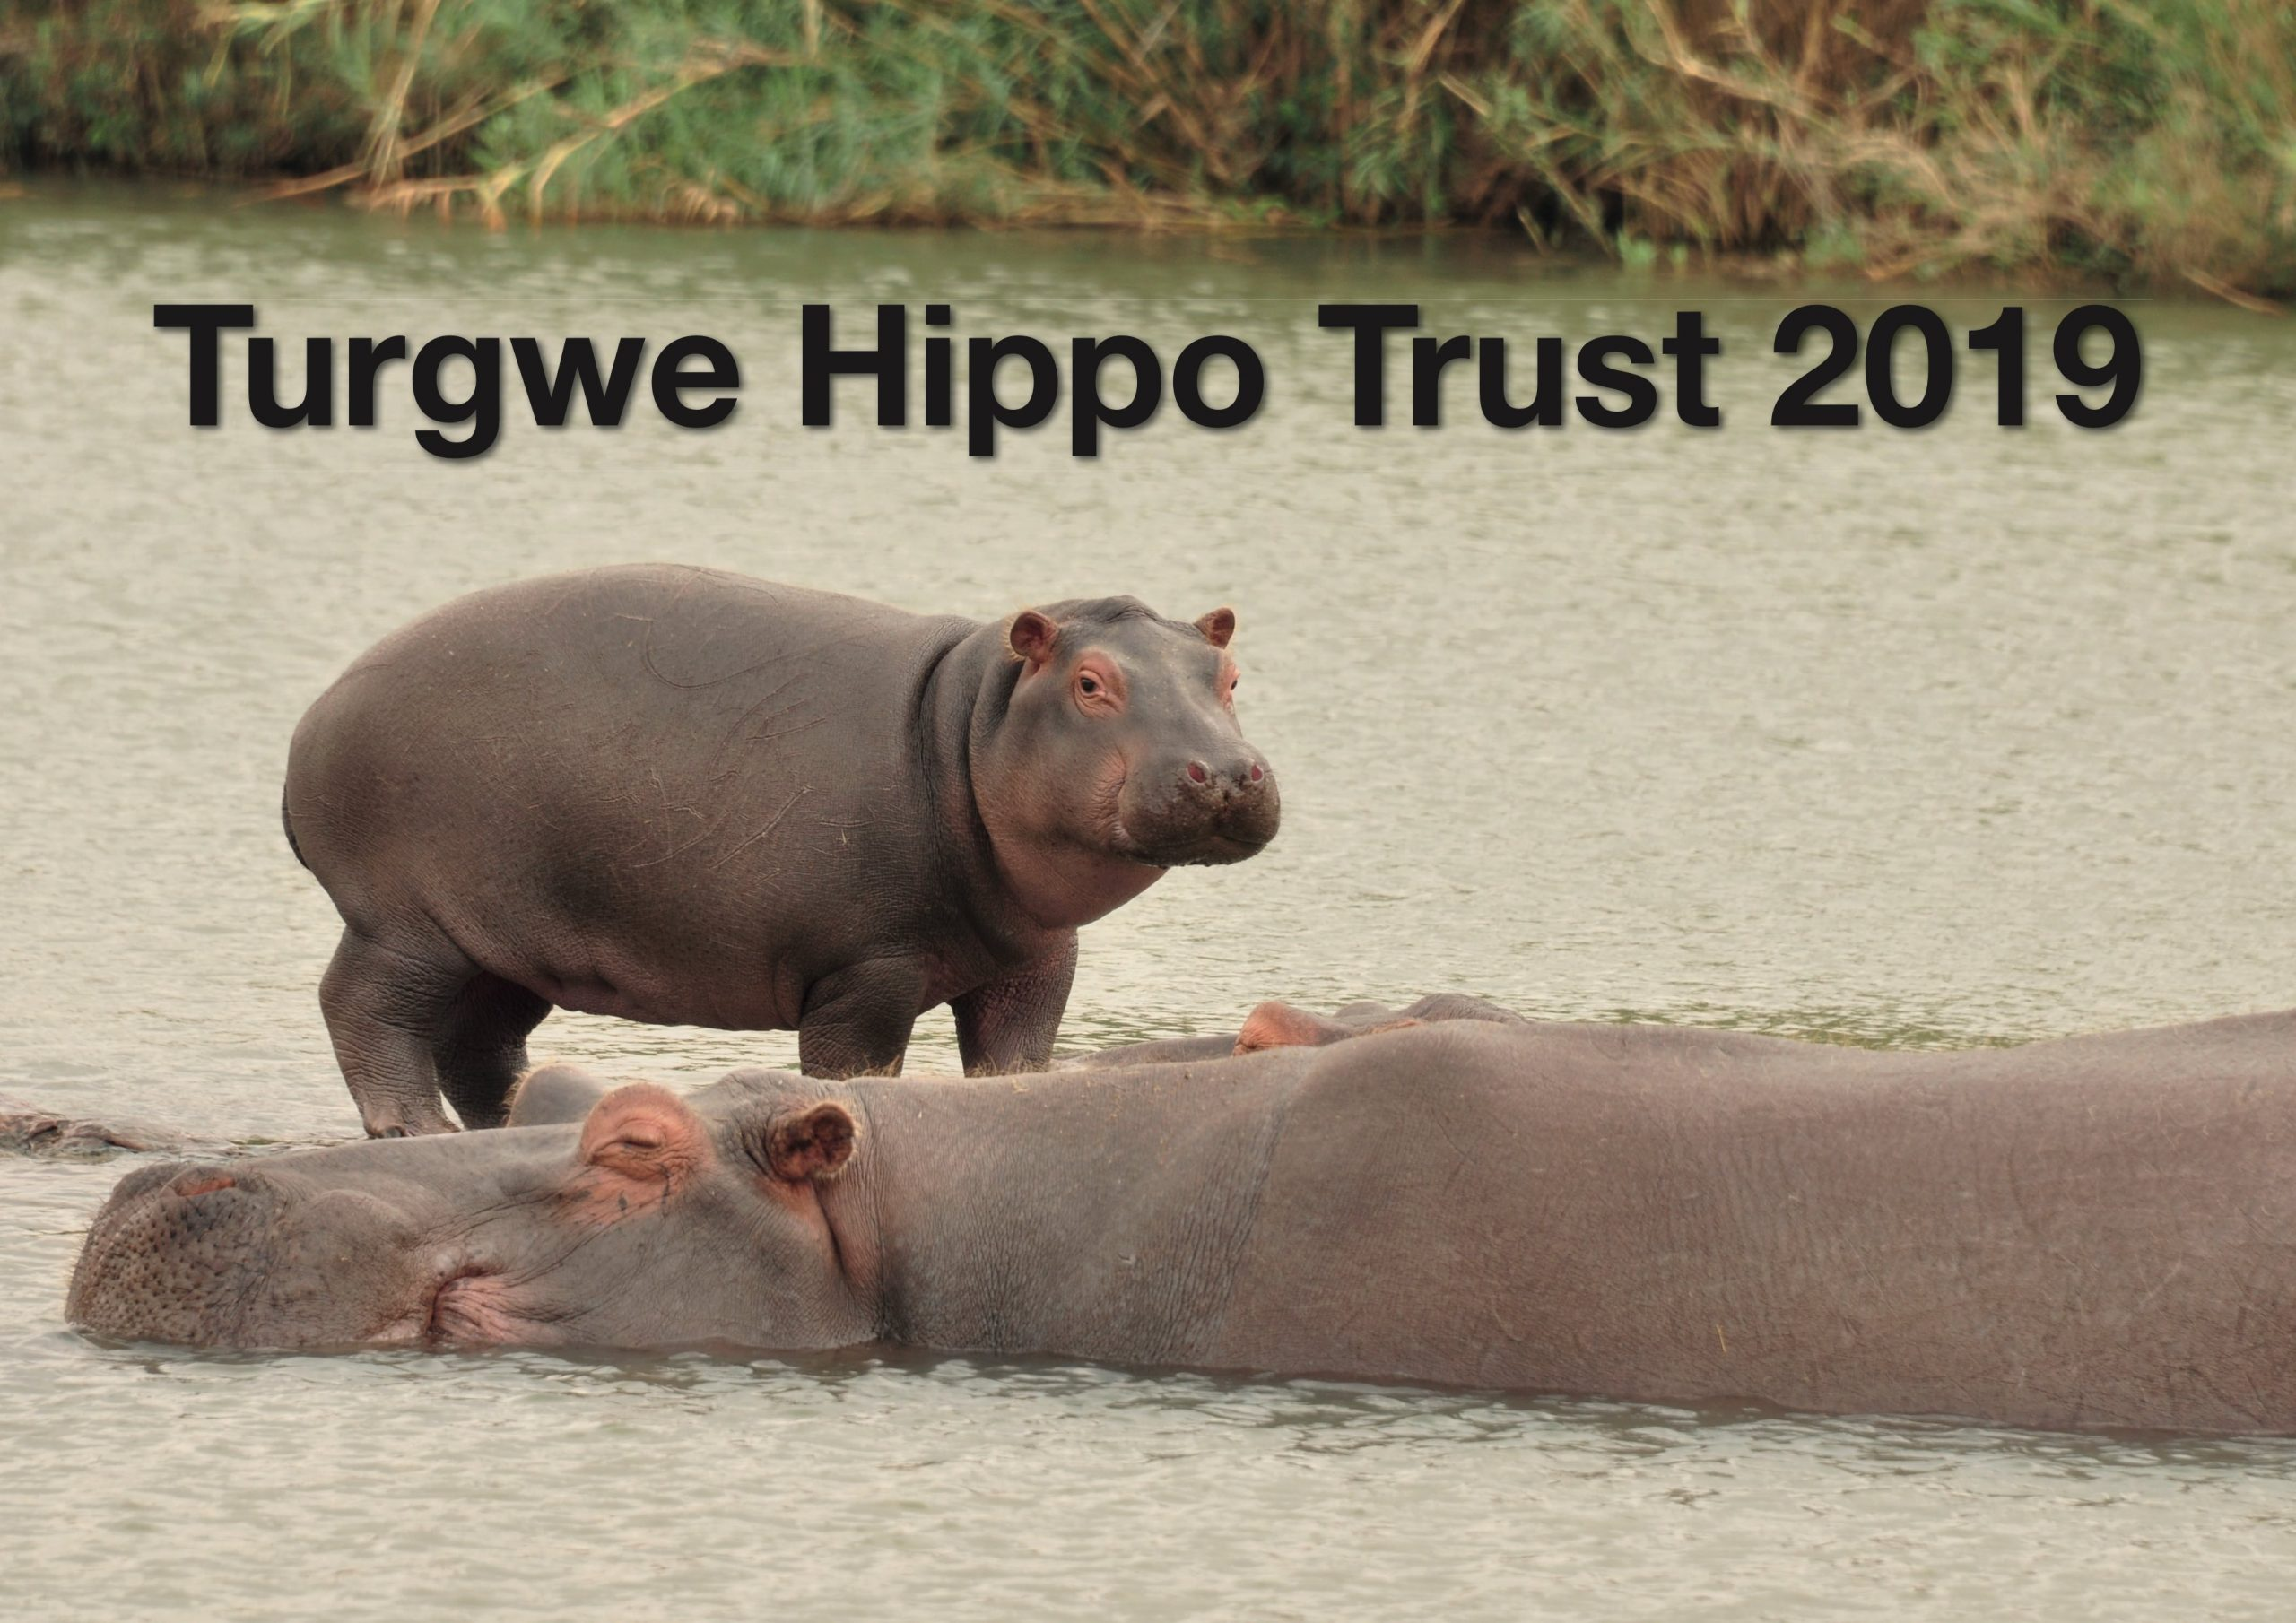 New 2020 Turgwe Hippo Trust Calendar is ready